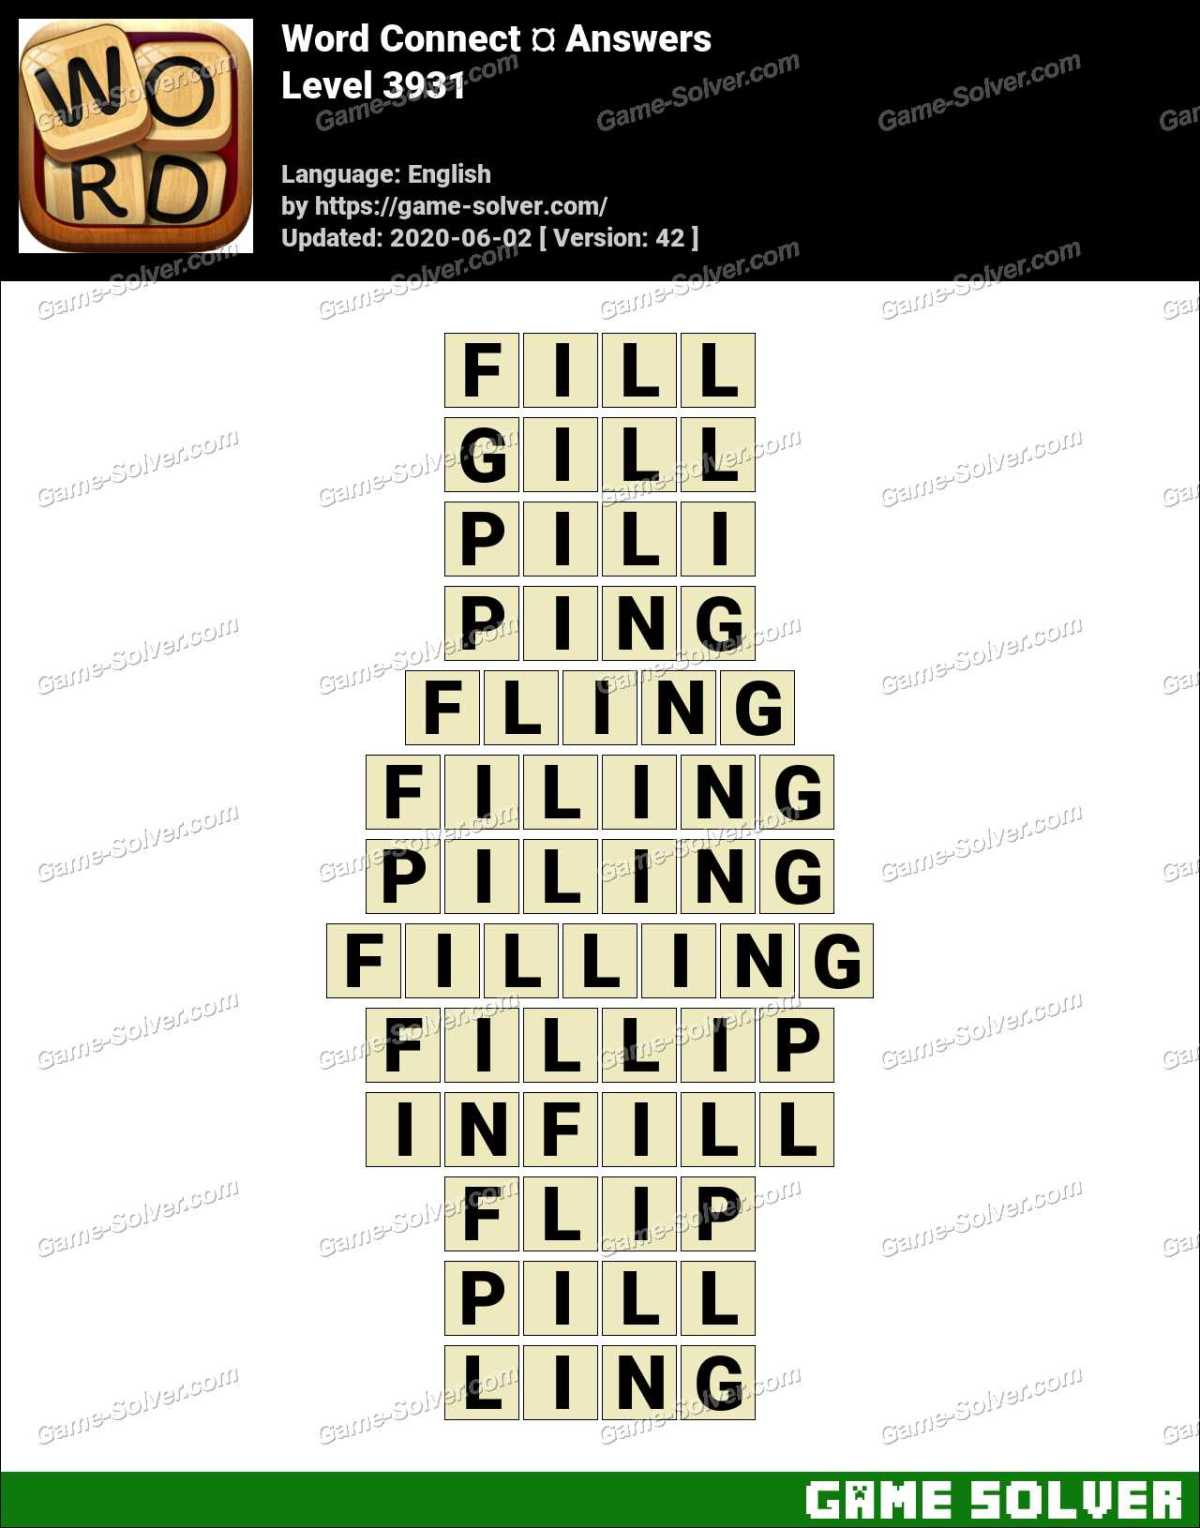 Word Connect Level 3931 Answers